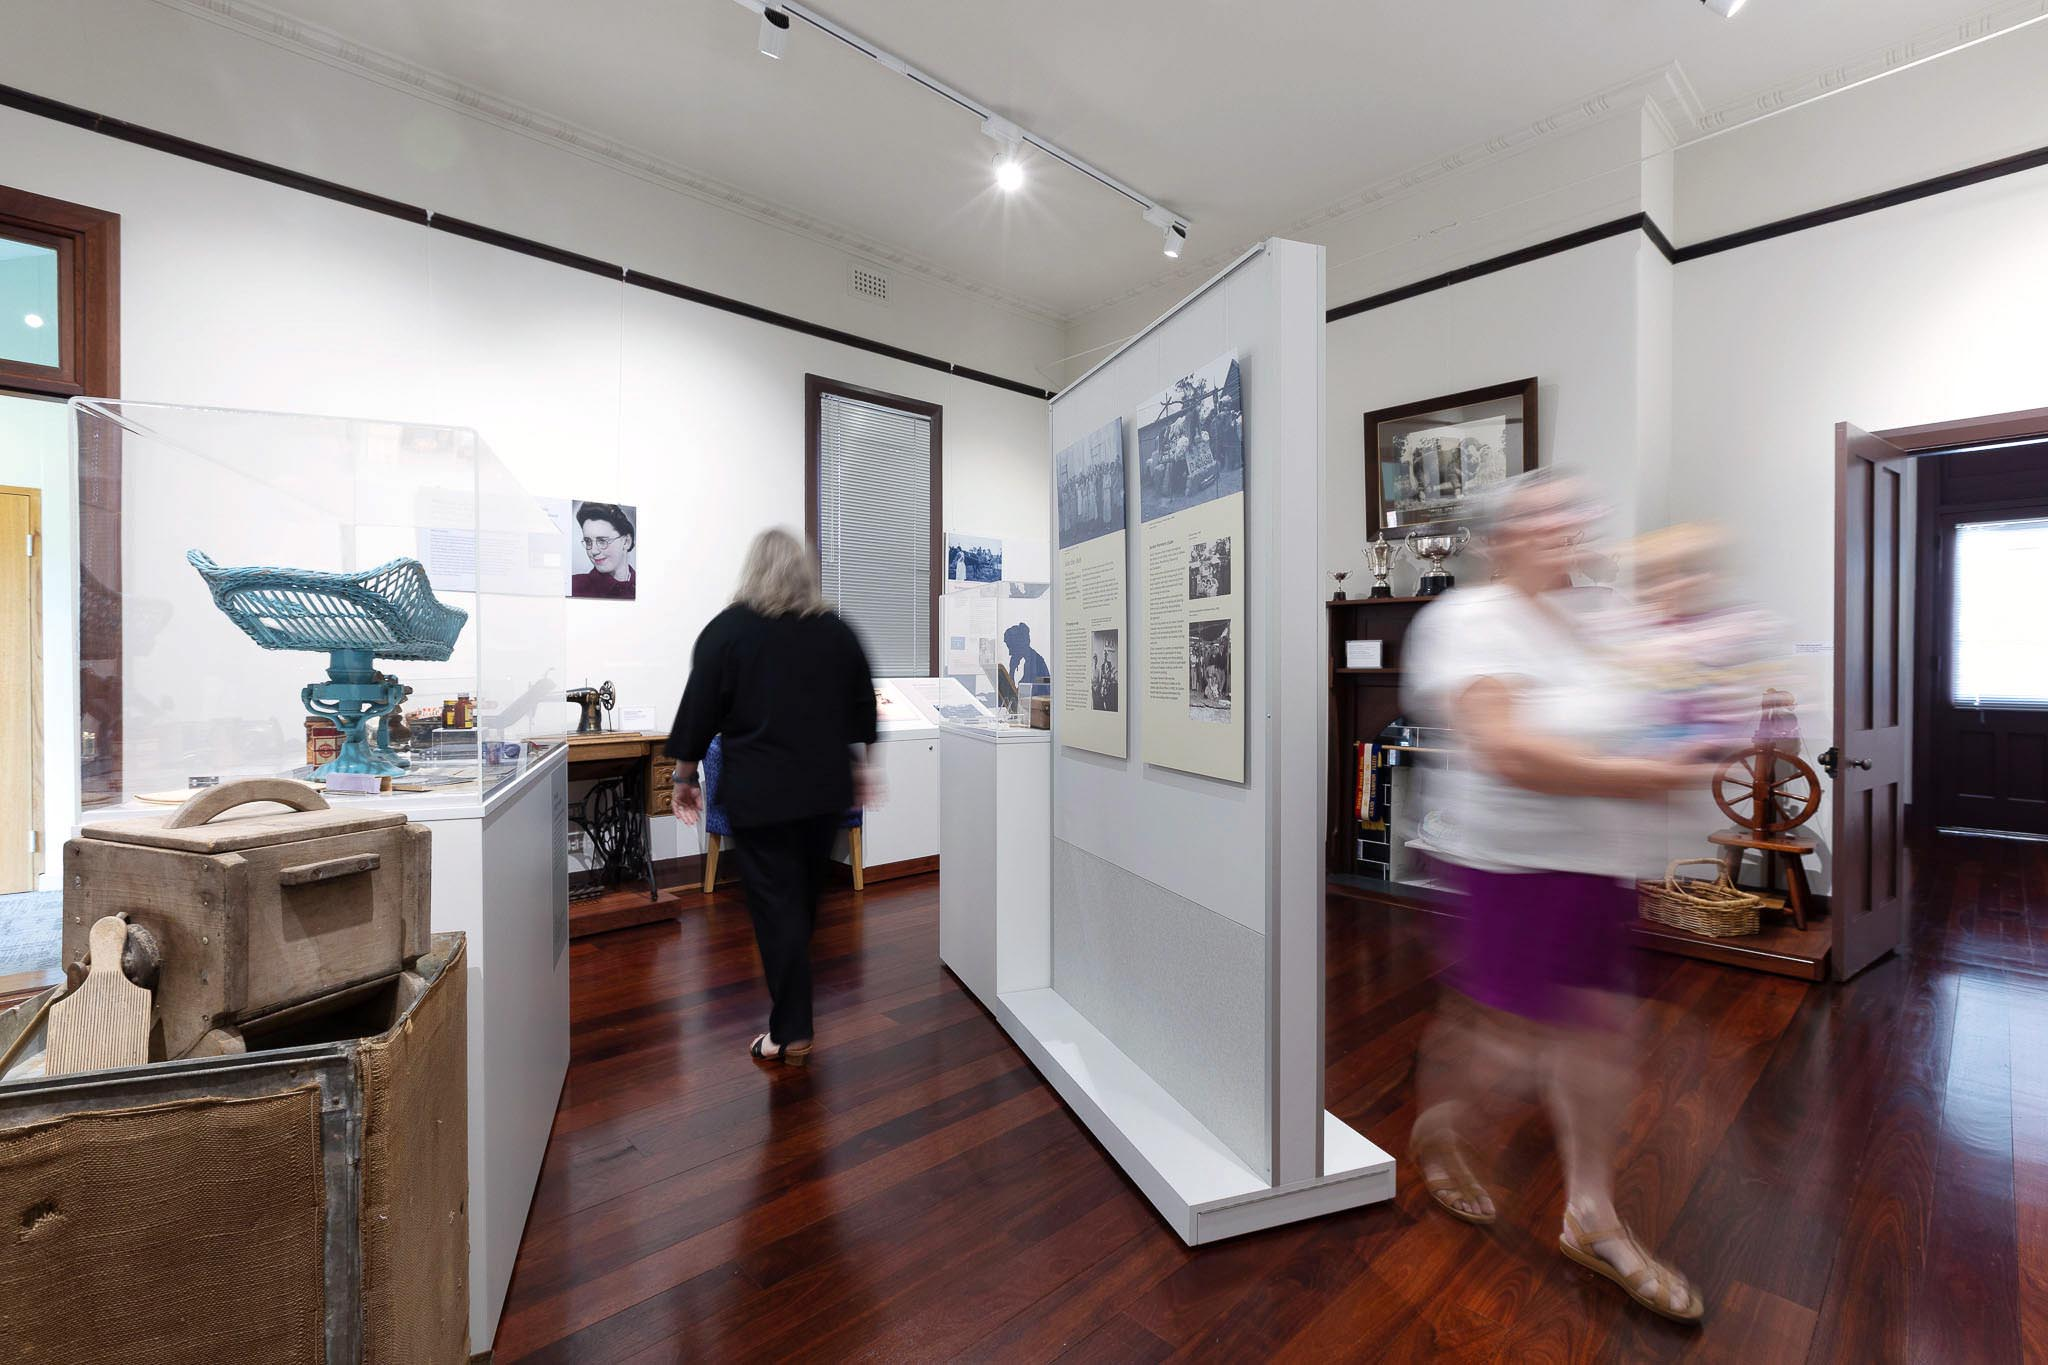 Wide angle view of main room of historical centre showing polished wood floor, museum displays, and people blurred moving through the scene.